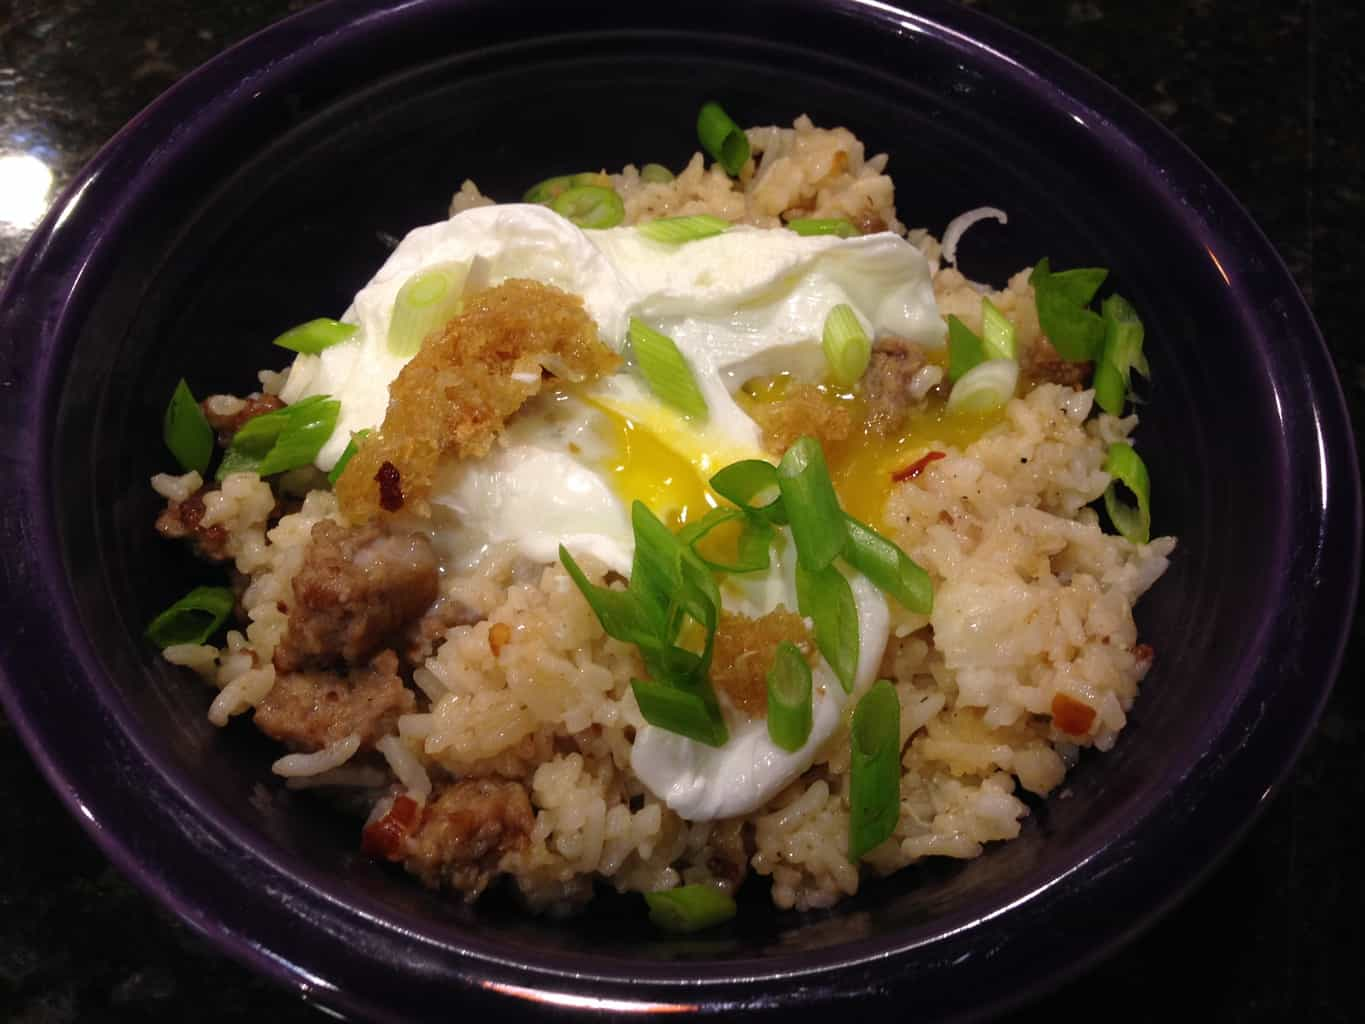 Filipino Garlic Fried Rice with Vinegar Sauce (Sinangag-Style)